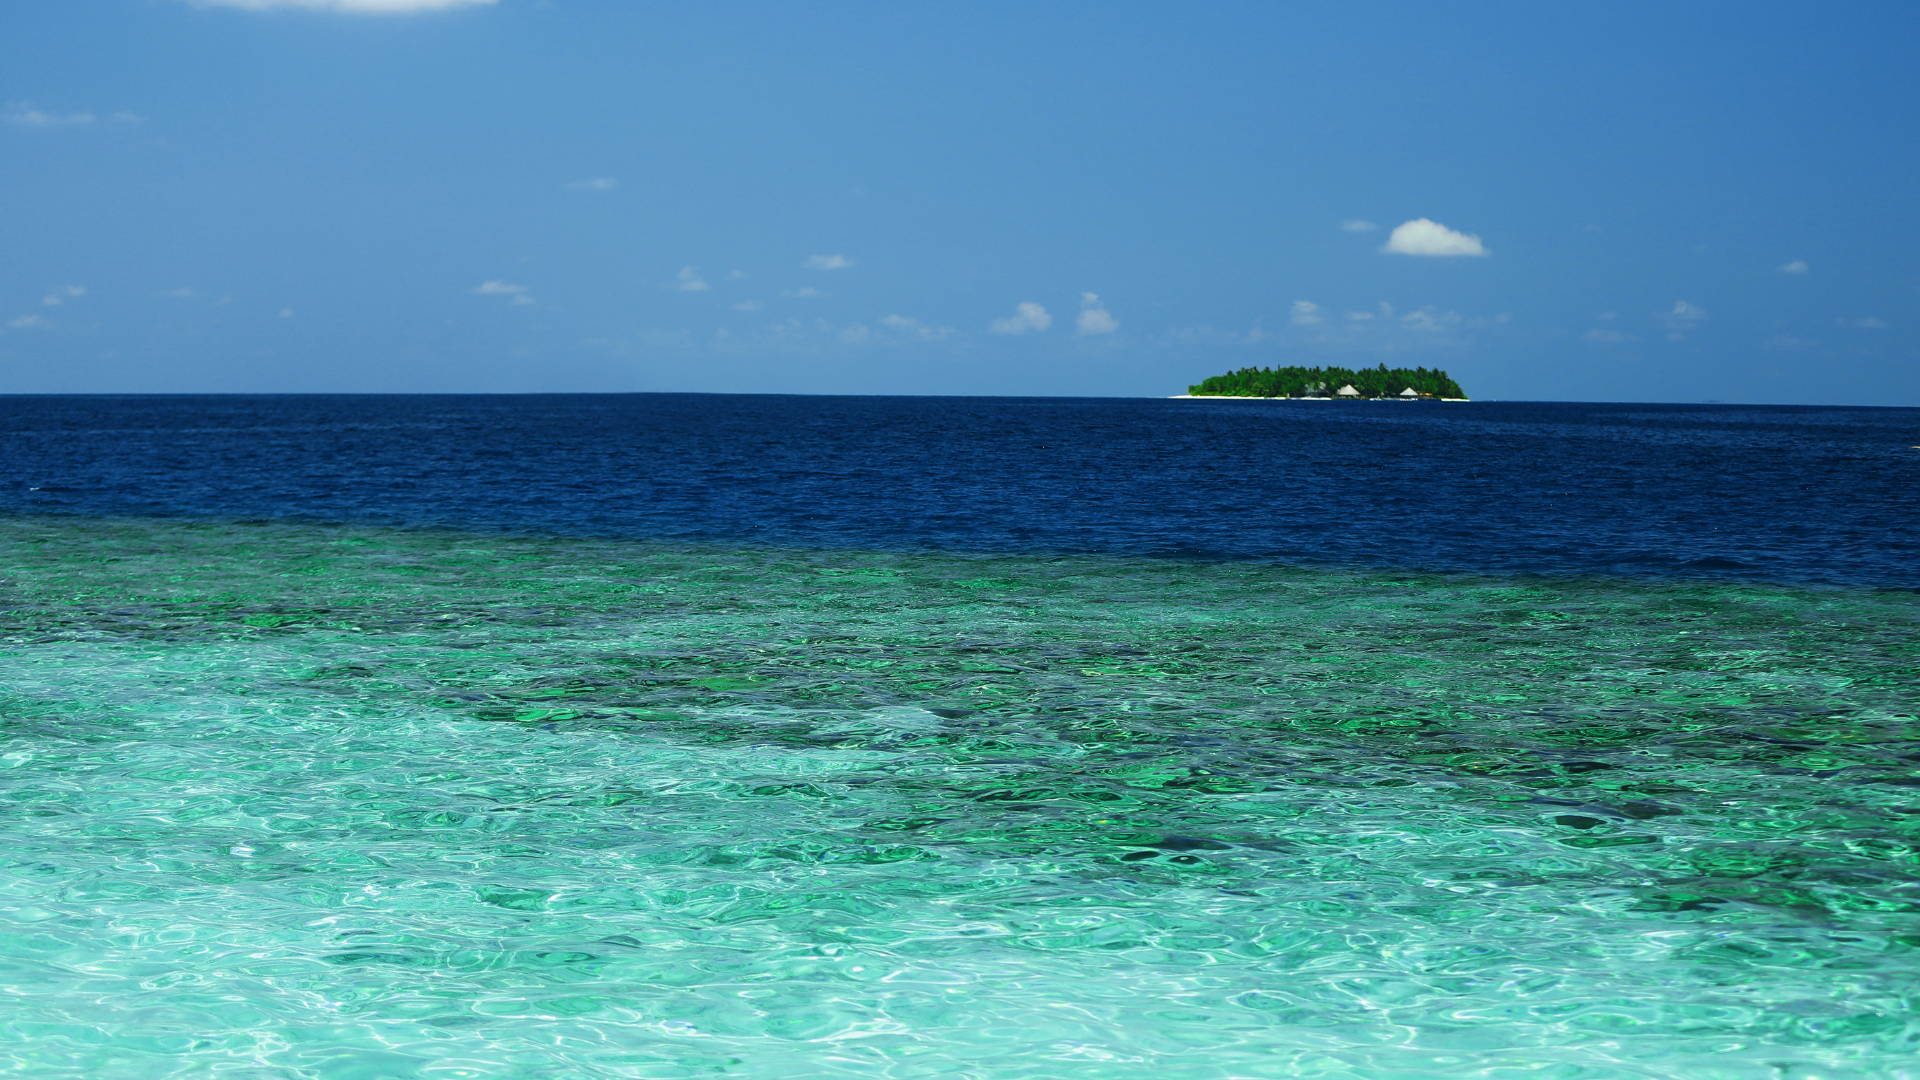 Colors of the Ocean: Why Are Some Oceans Blue and Others Green?